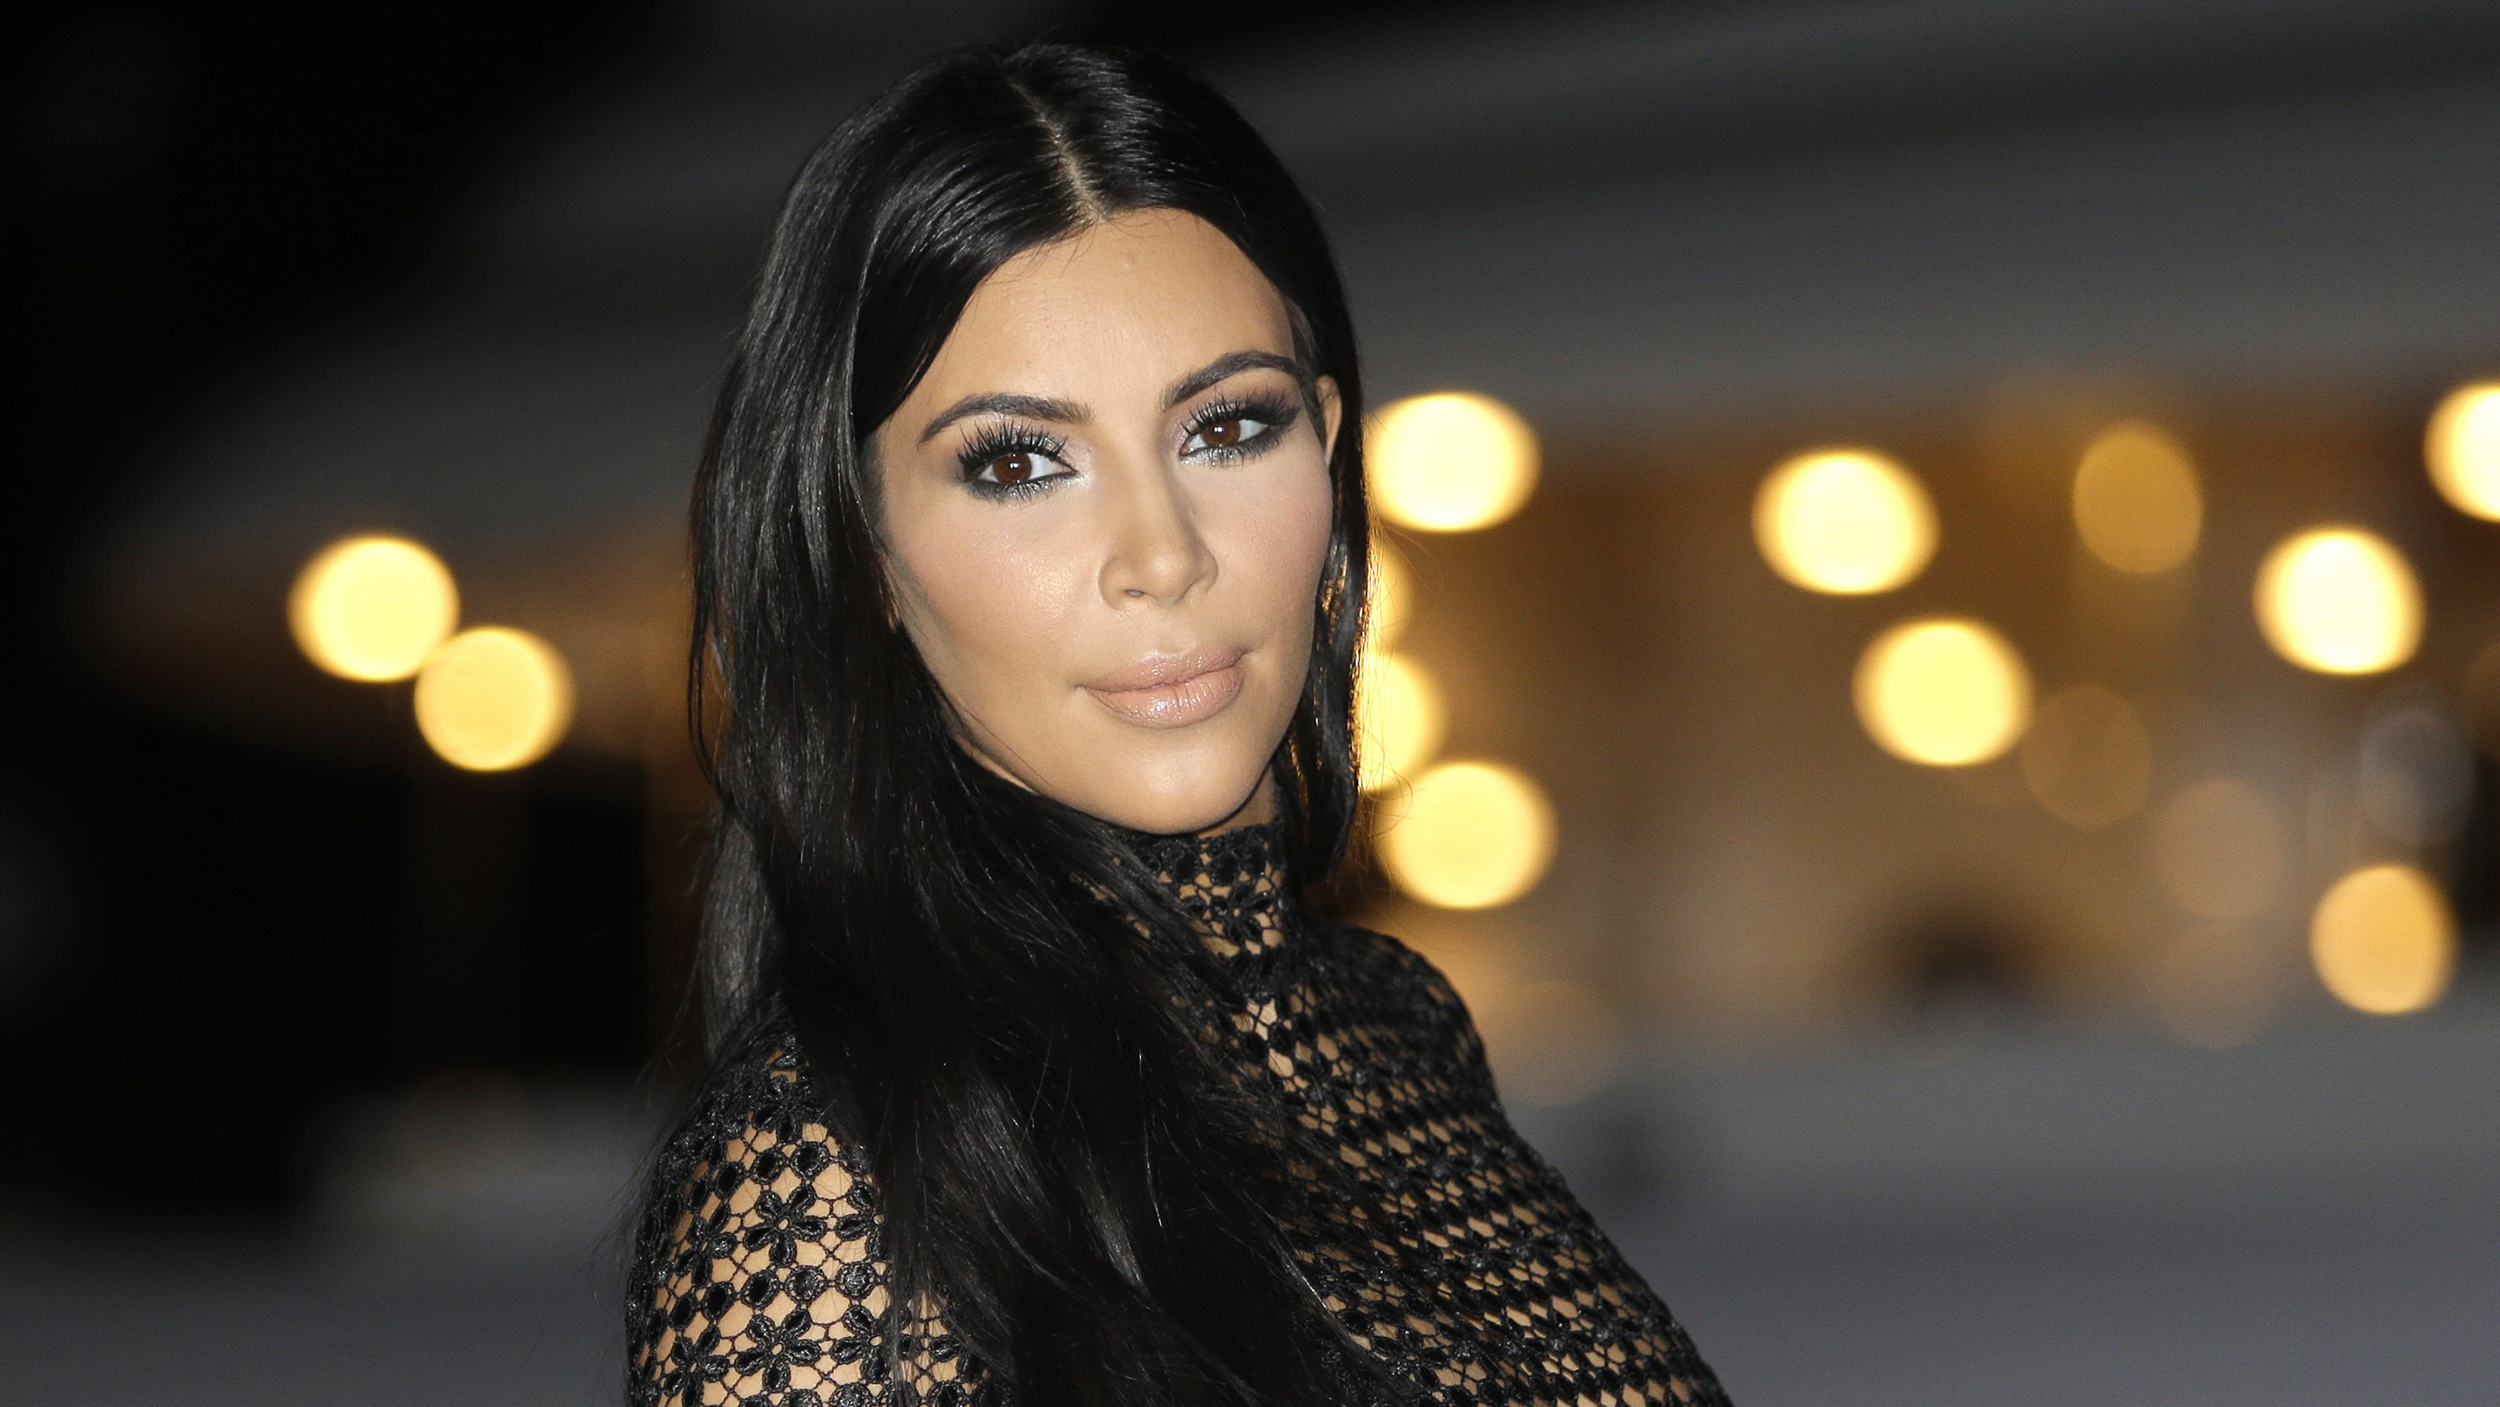 Kim kardashian warned by fda after instagram endorsement of morning